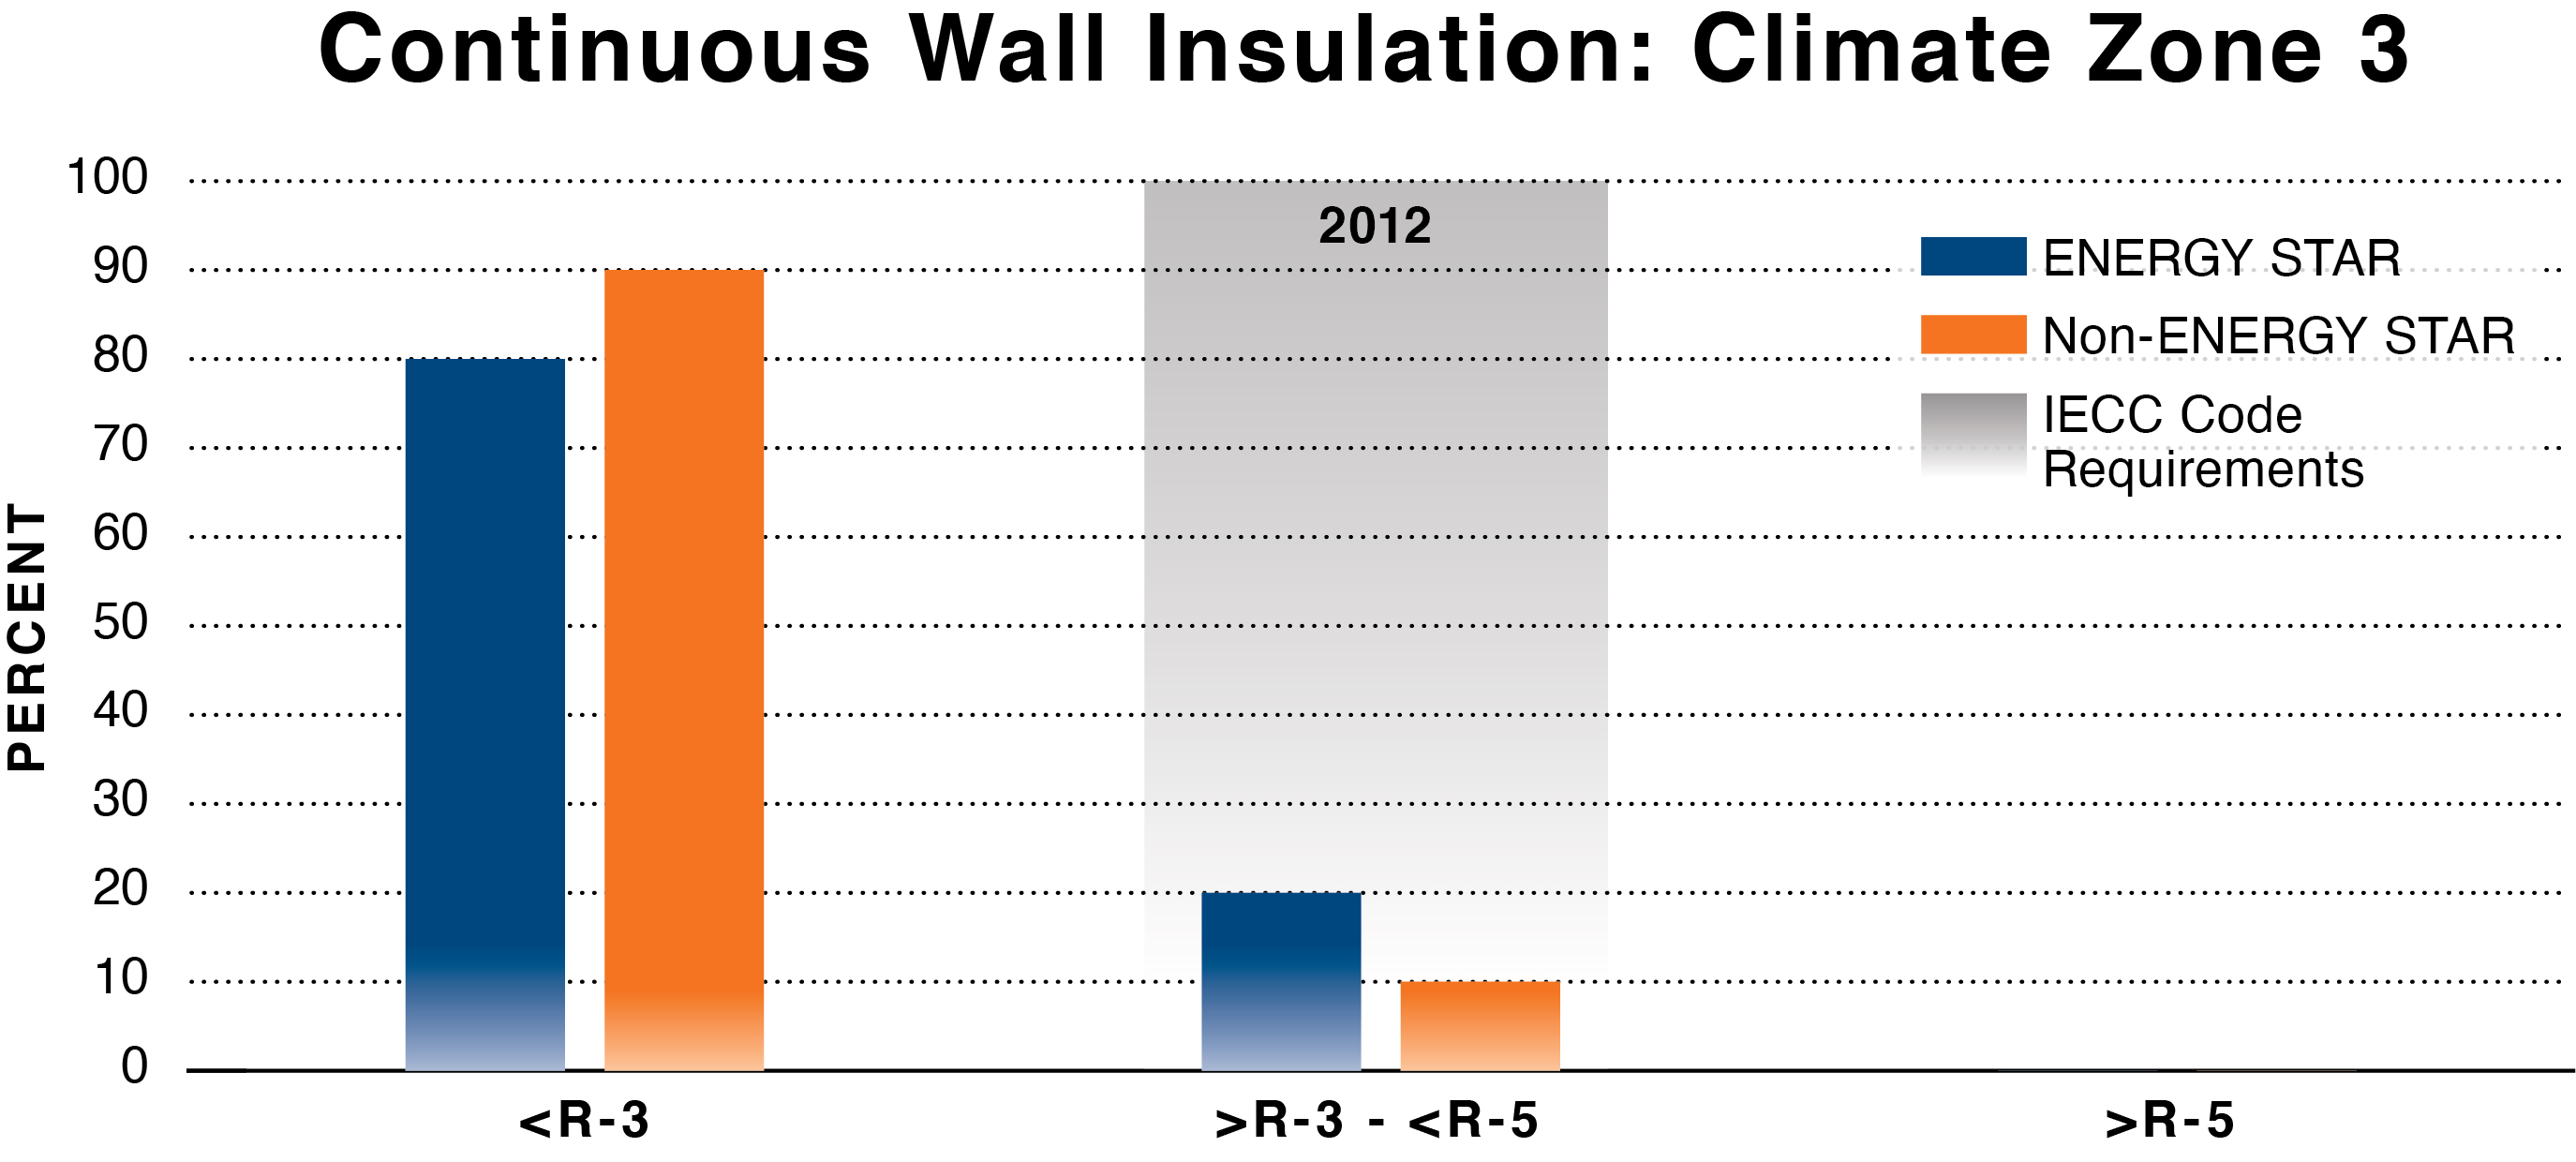 2_ContinuousWallInsulation